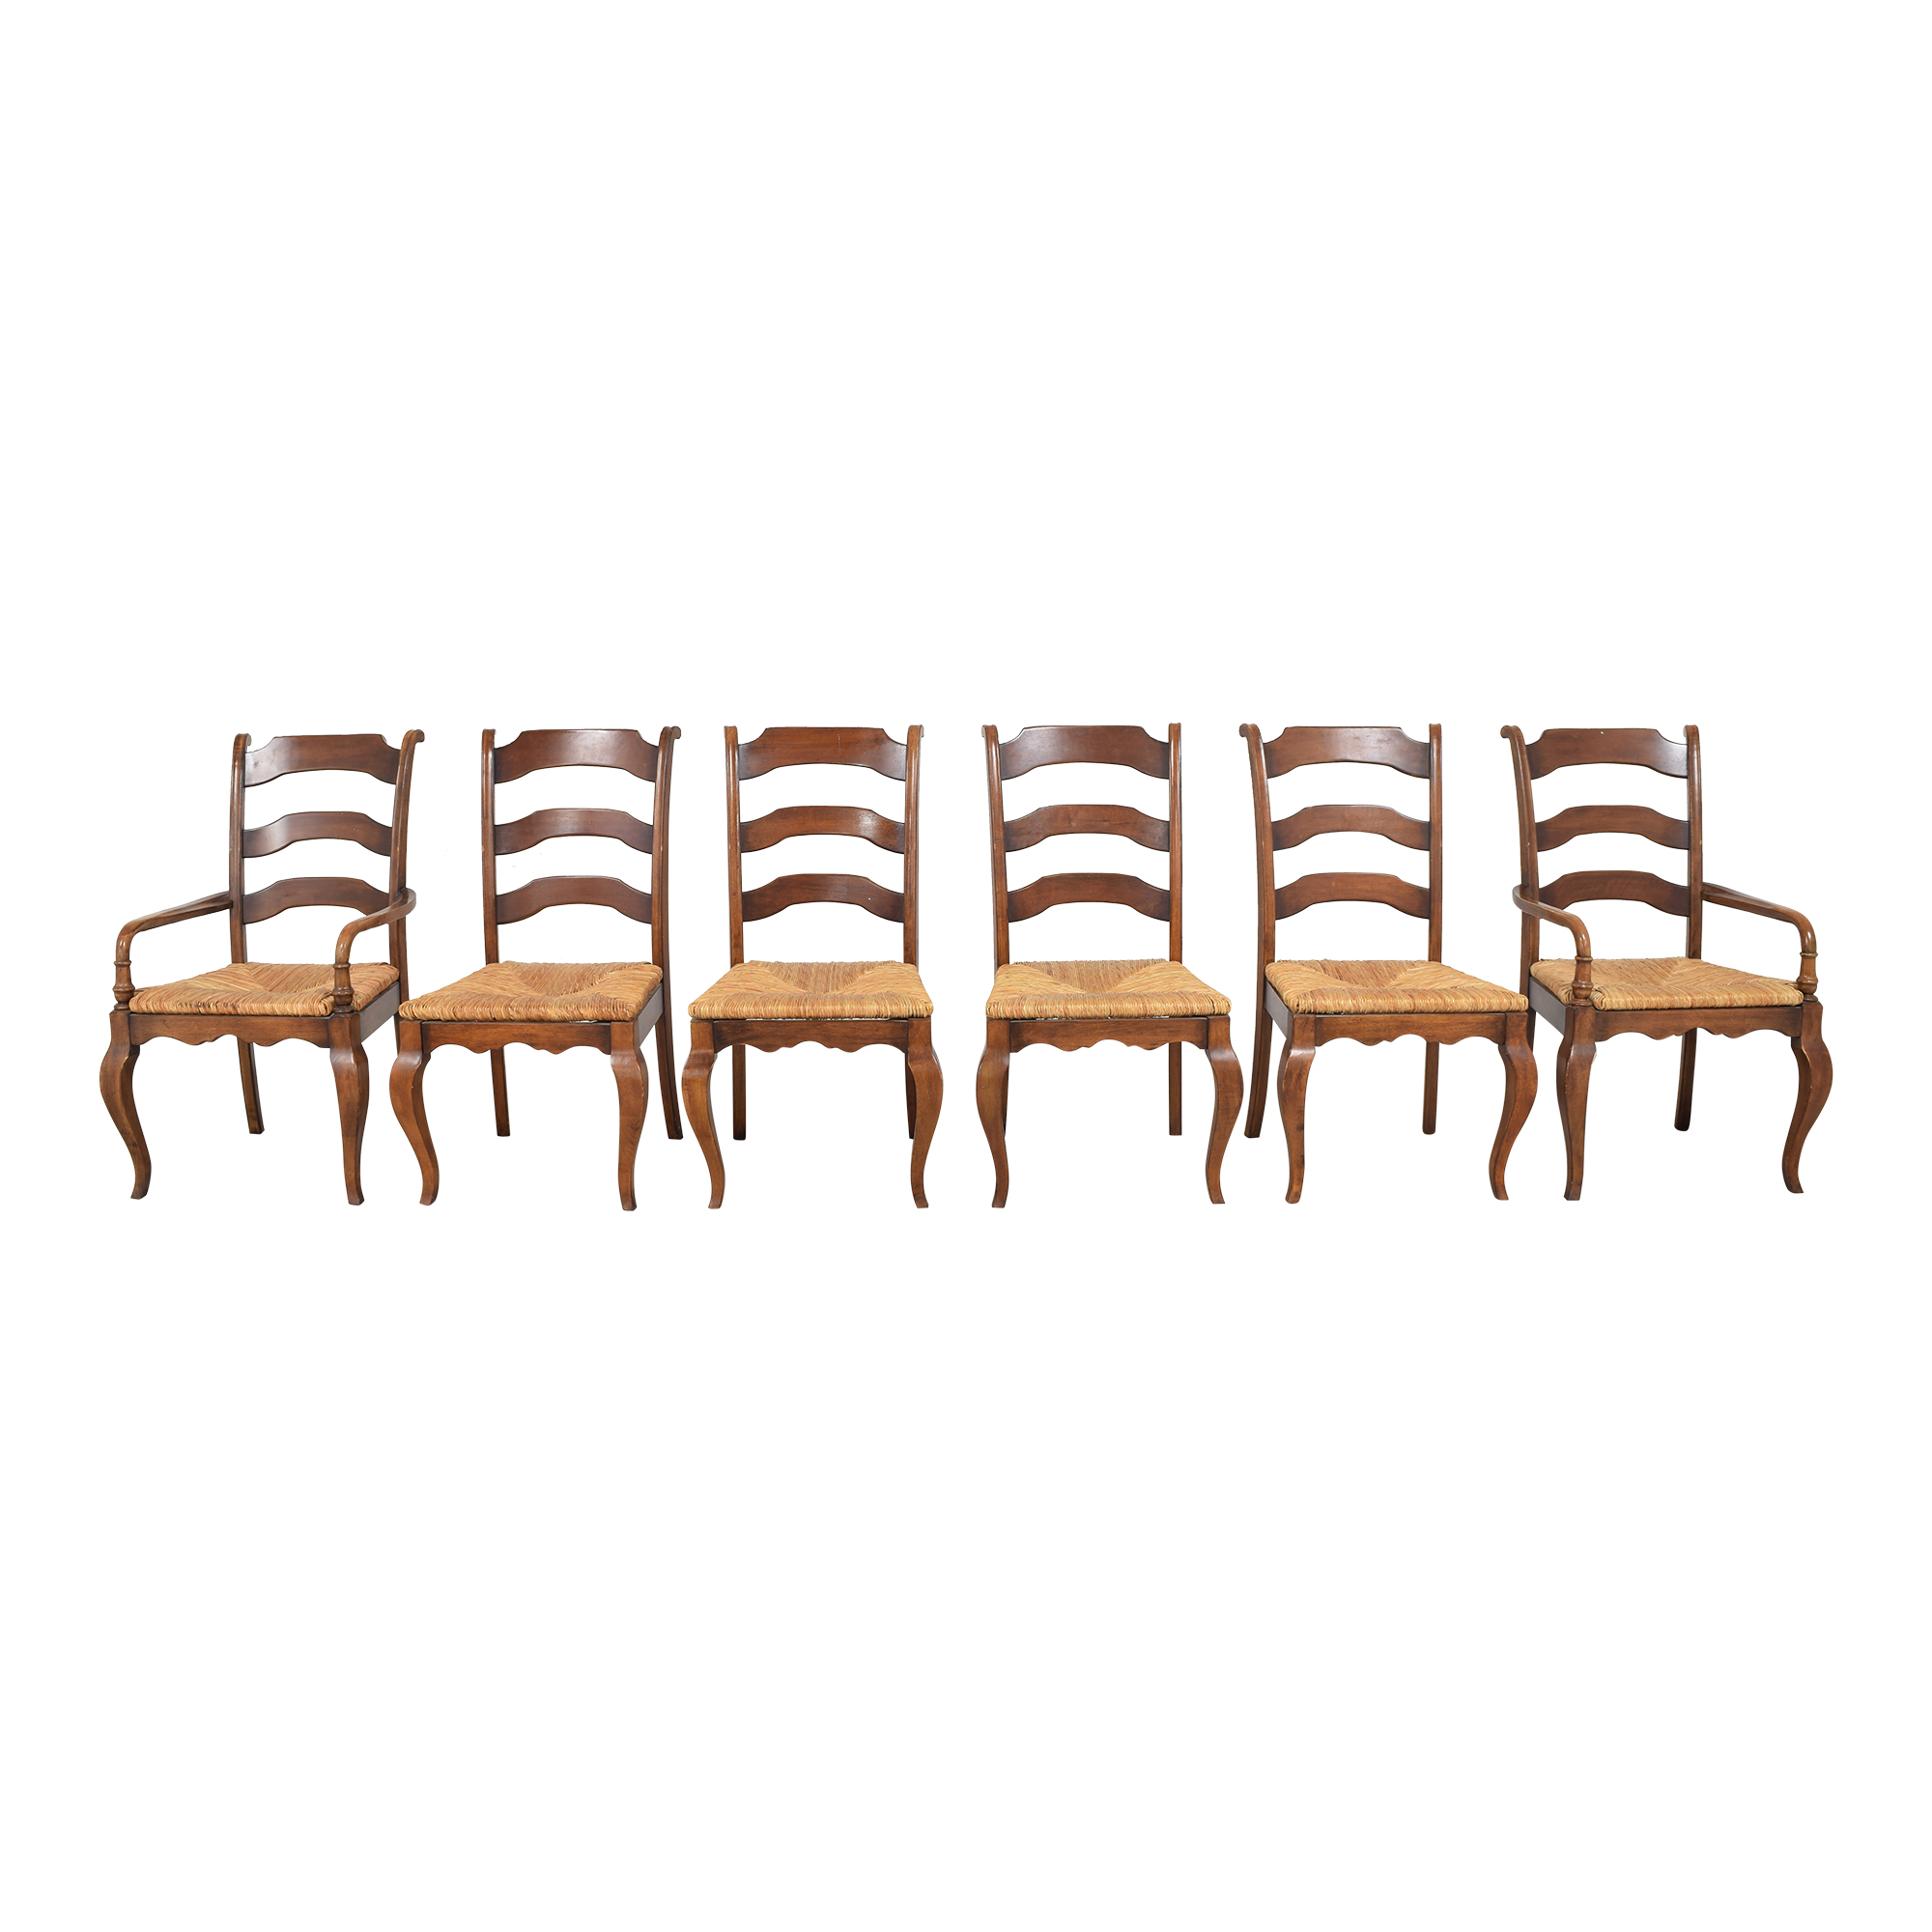 Hooker Furniture Hooker Furniture Woven Seat Dining Chairs discount